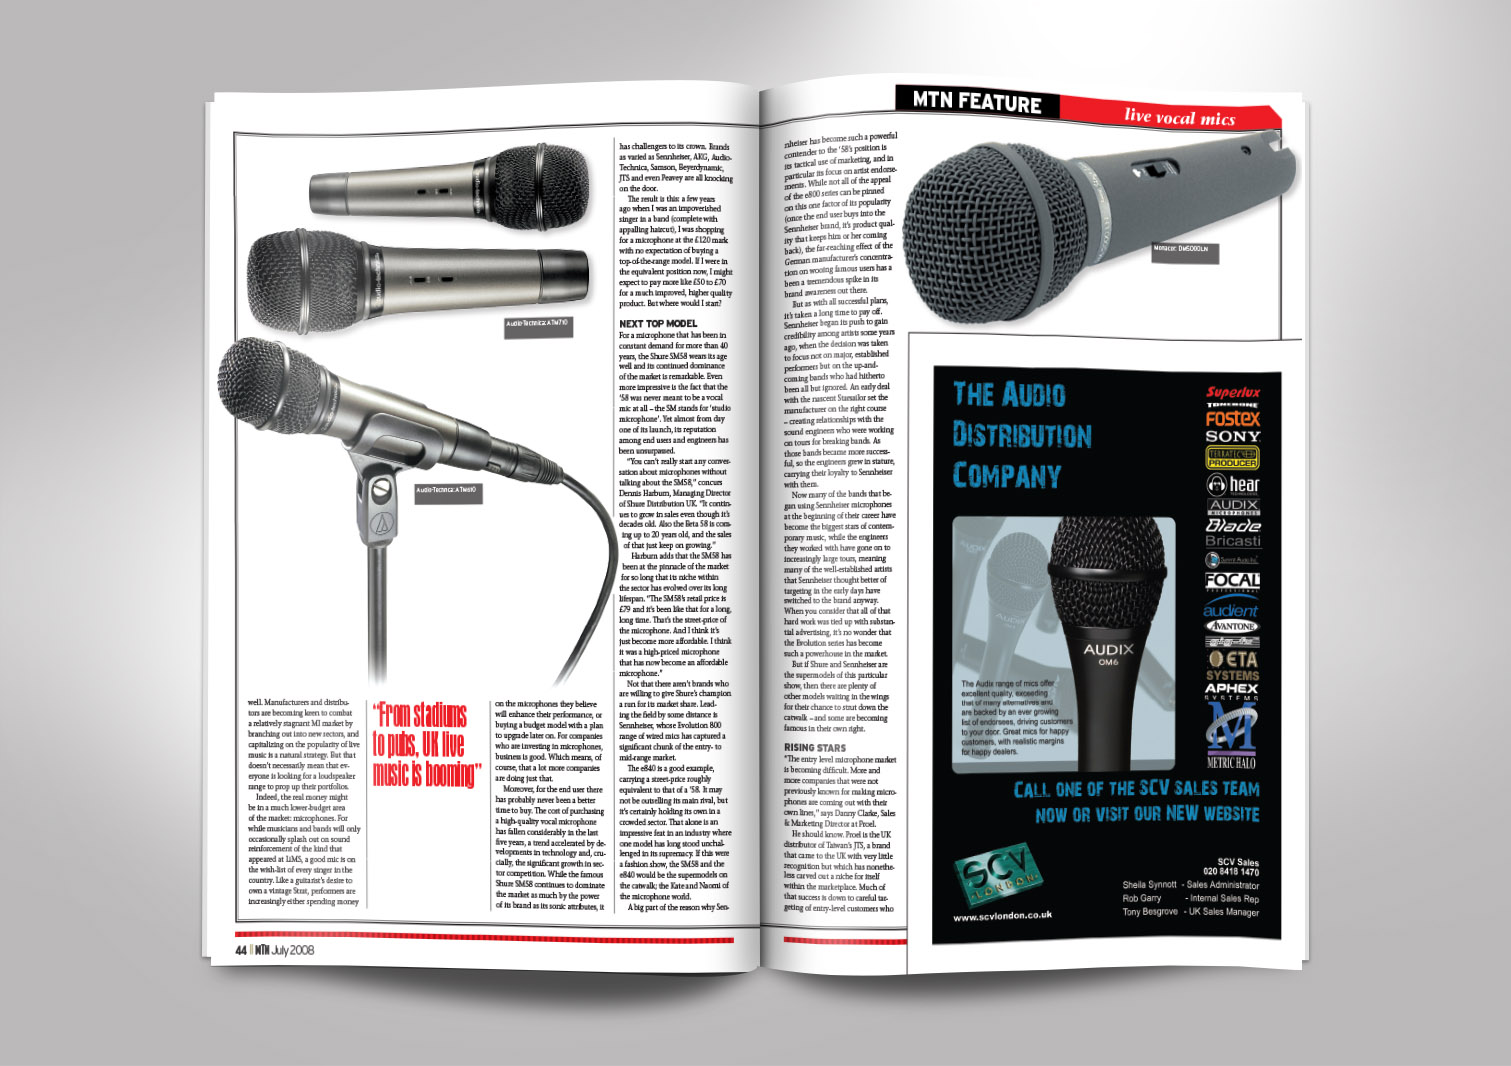 Music Trade News Magazine Inside Pages 5 and 6